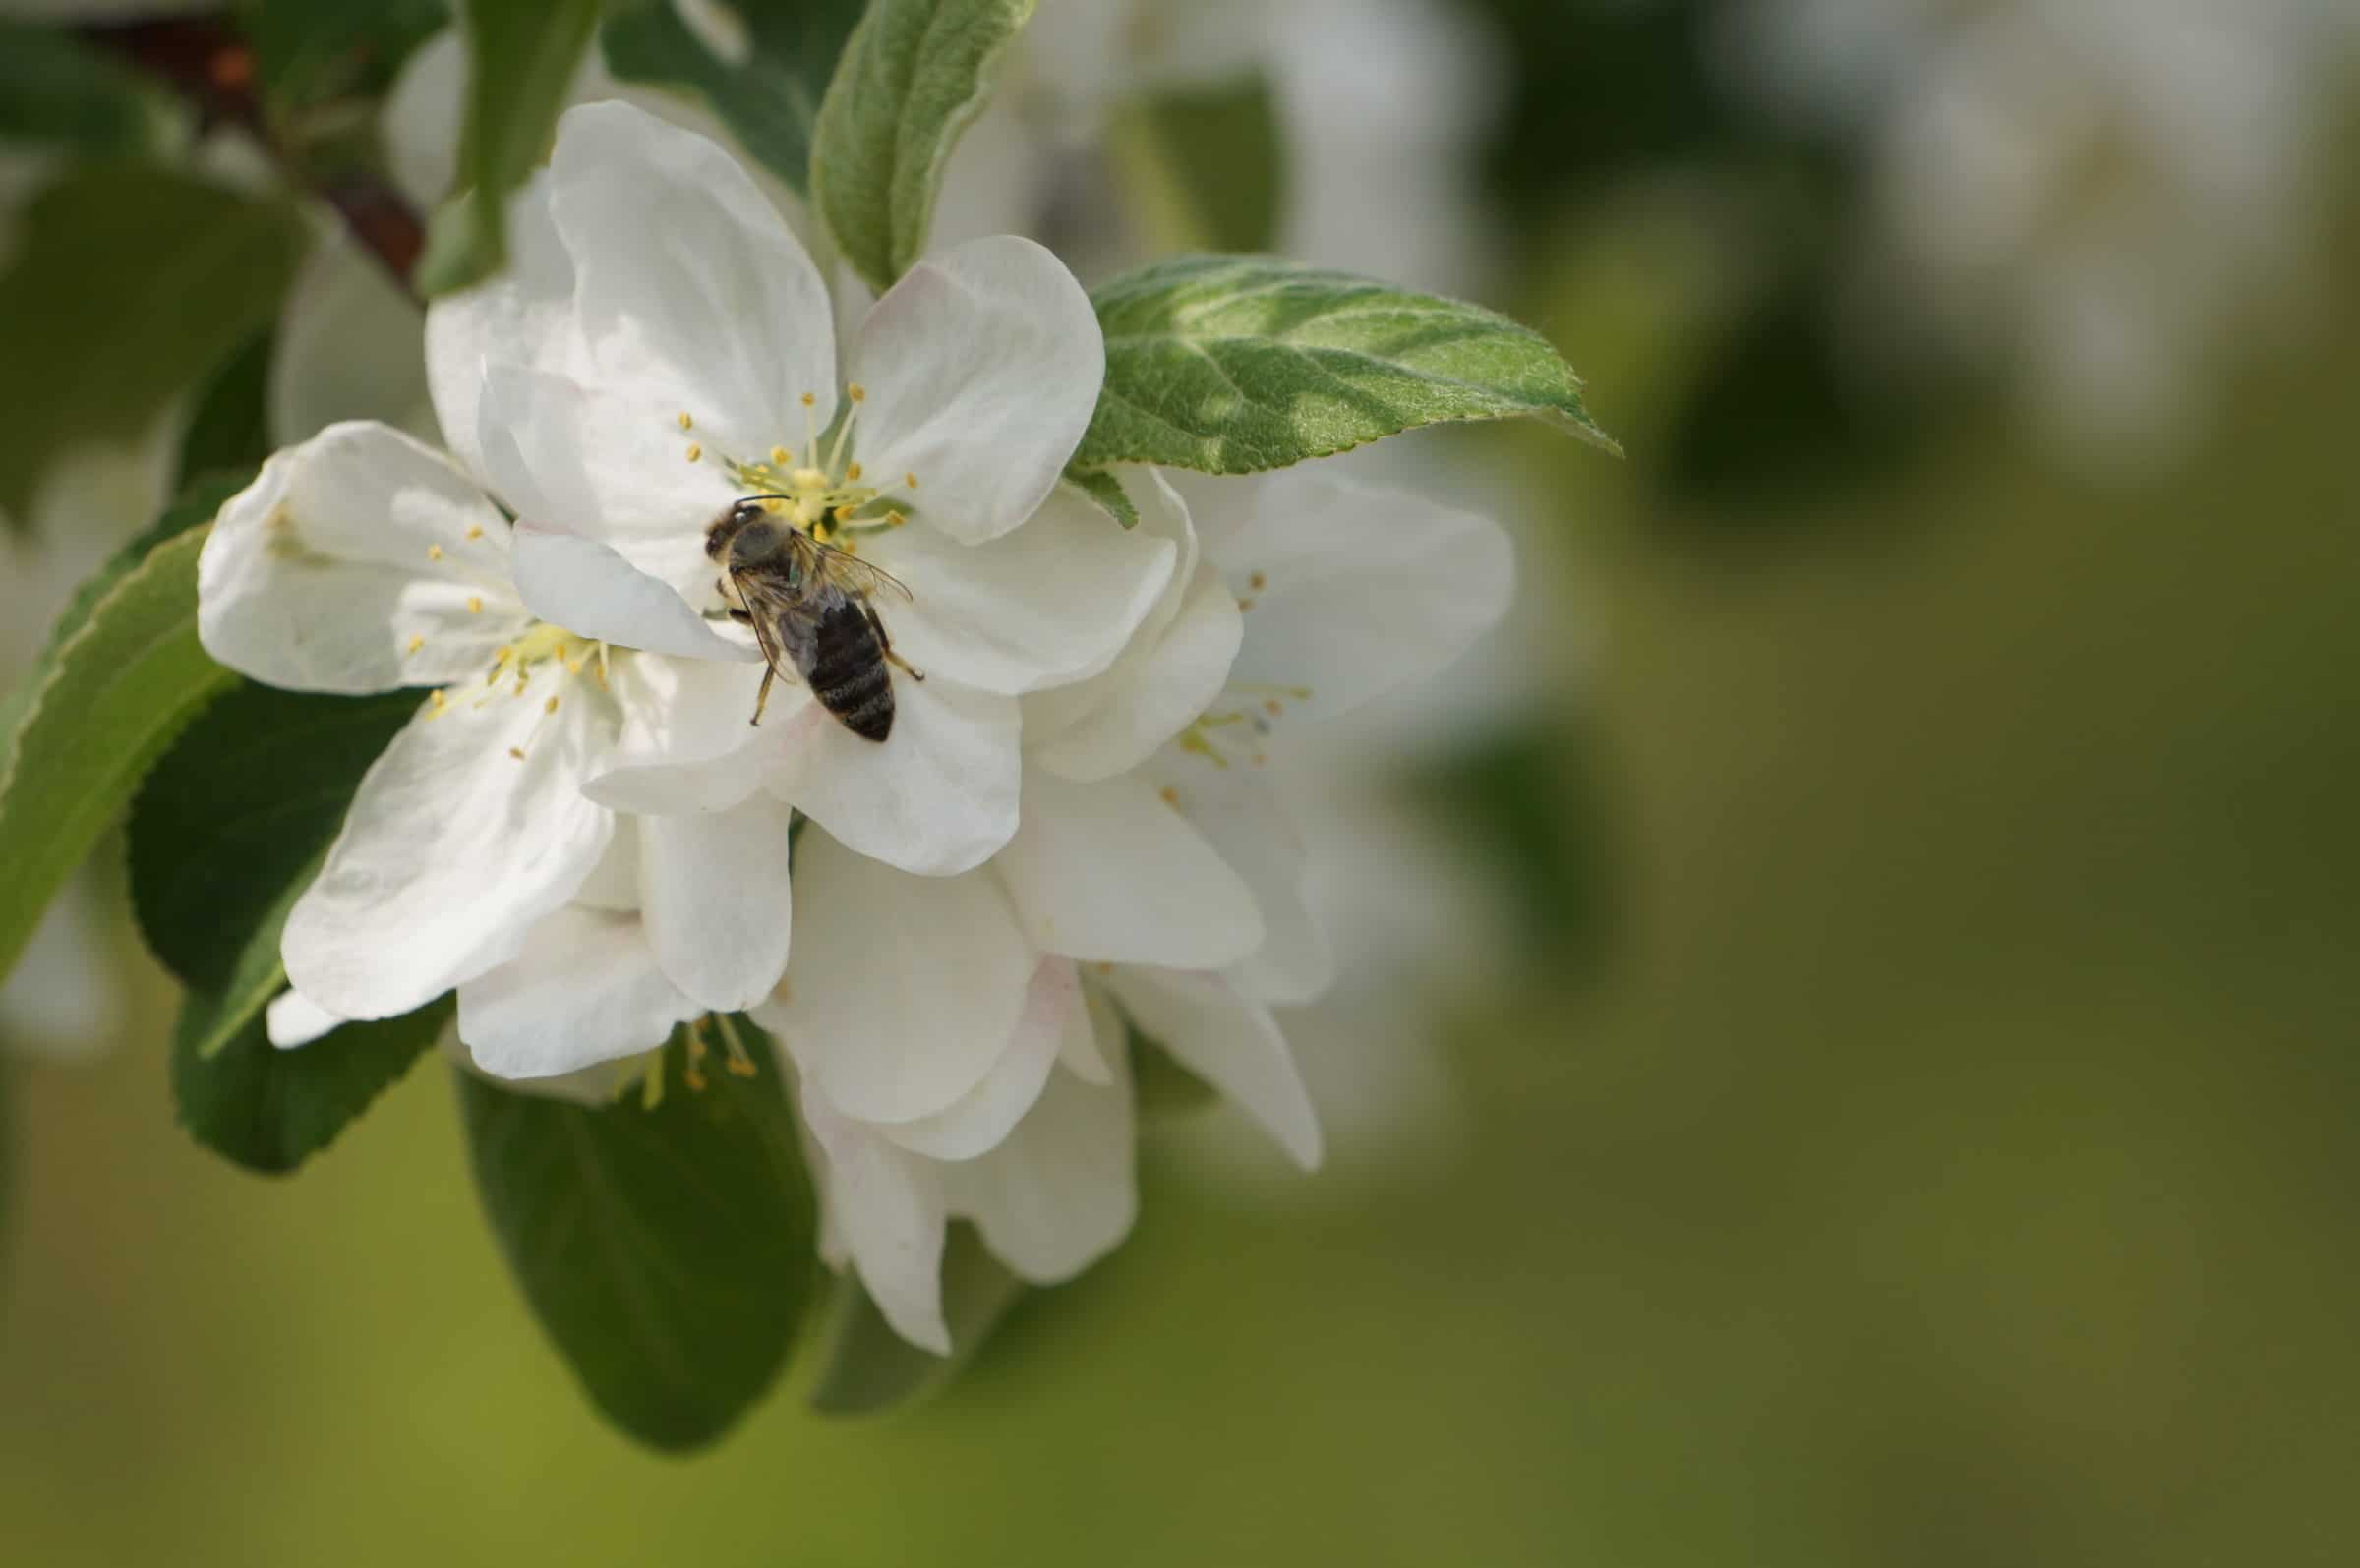 Bee sitting on white flower